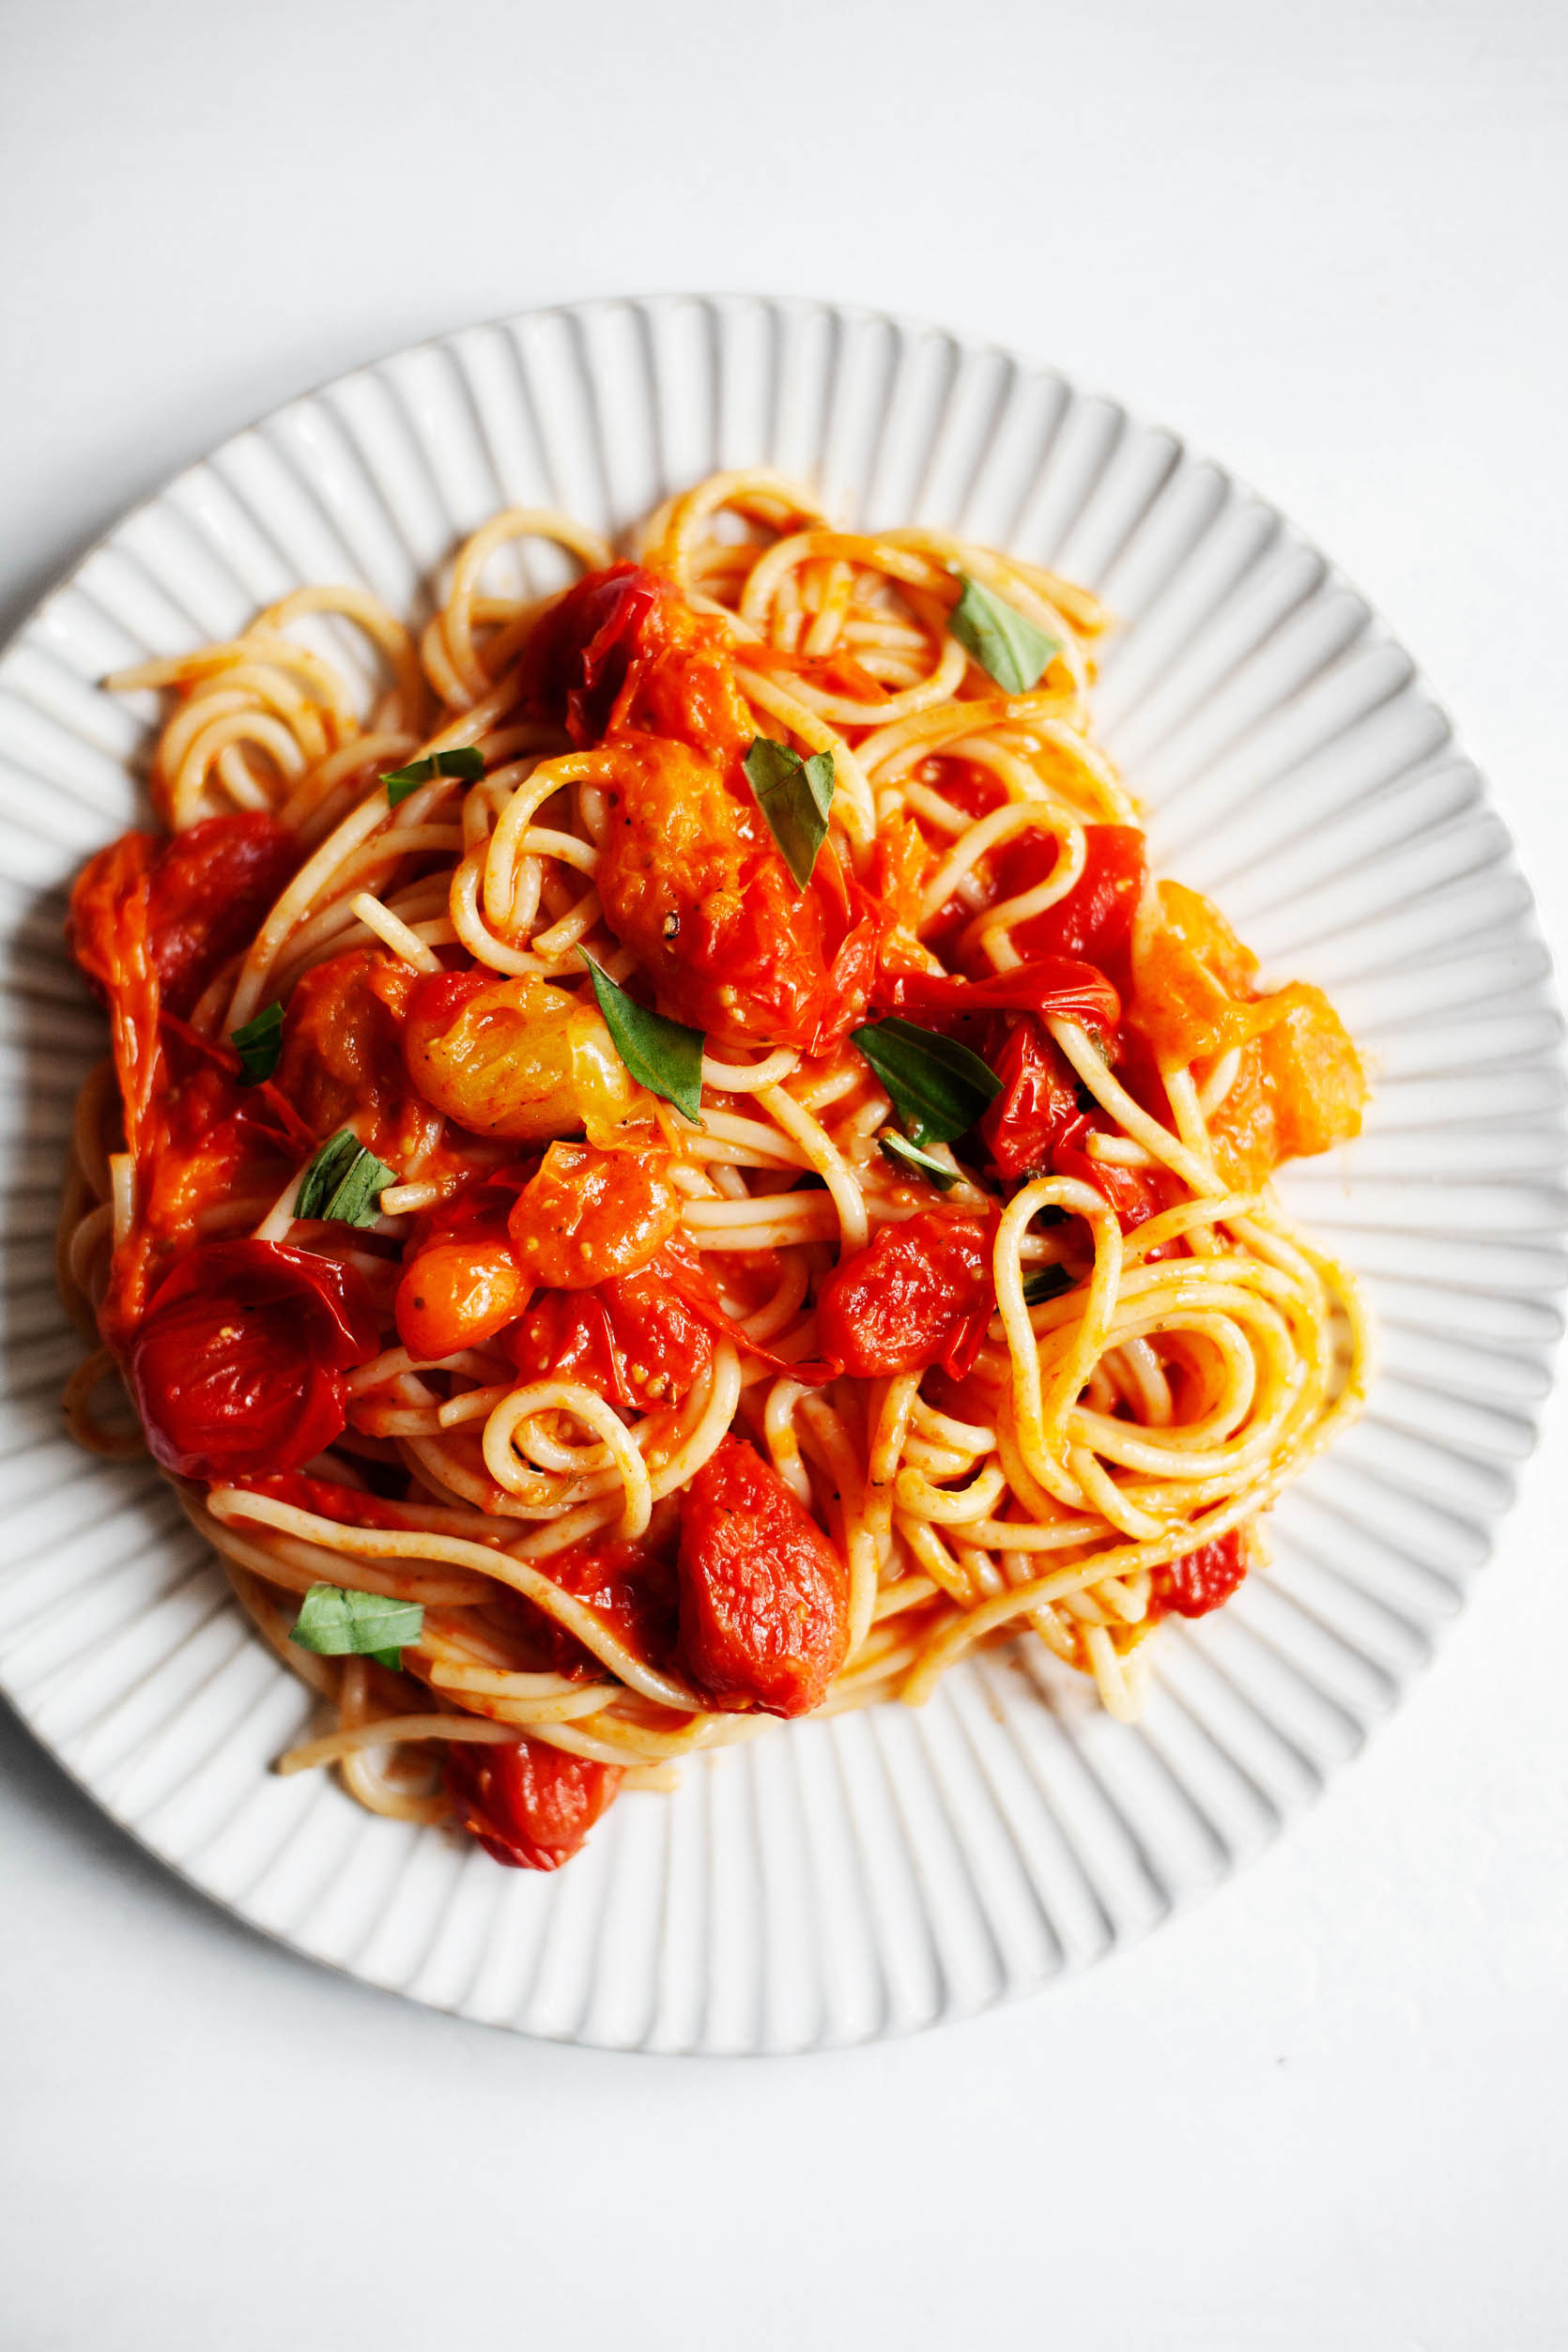 Simple vegan burst cherry tomato pasta | The Full Helping